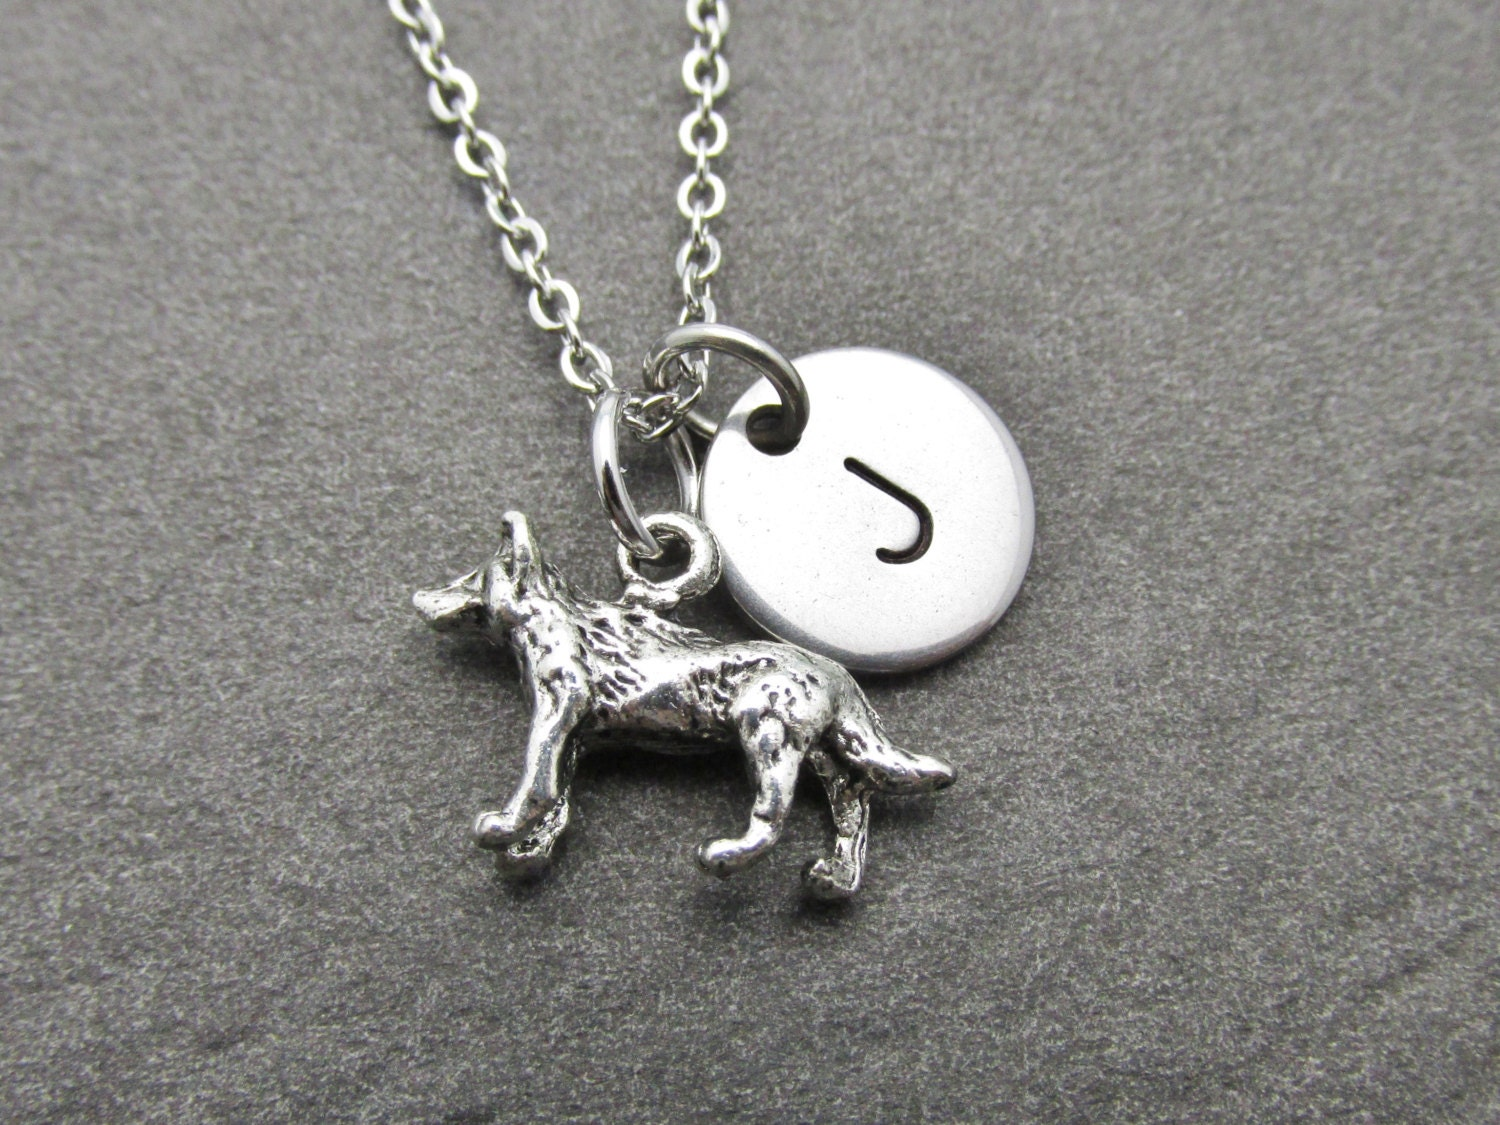 werewolf necklace with initial charm silver by cranberrystreetny